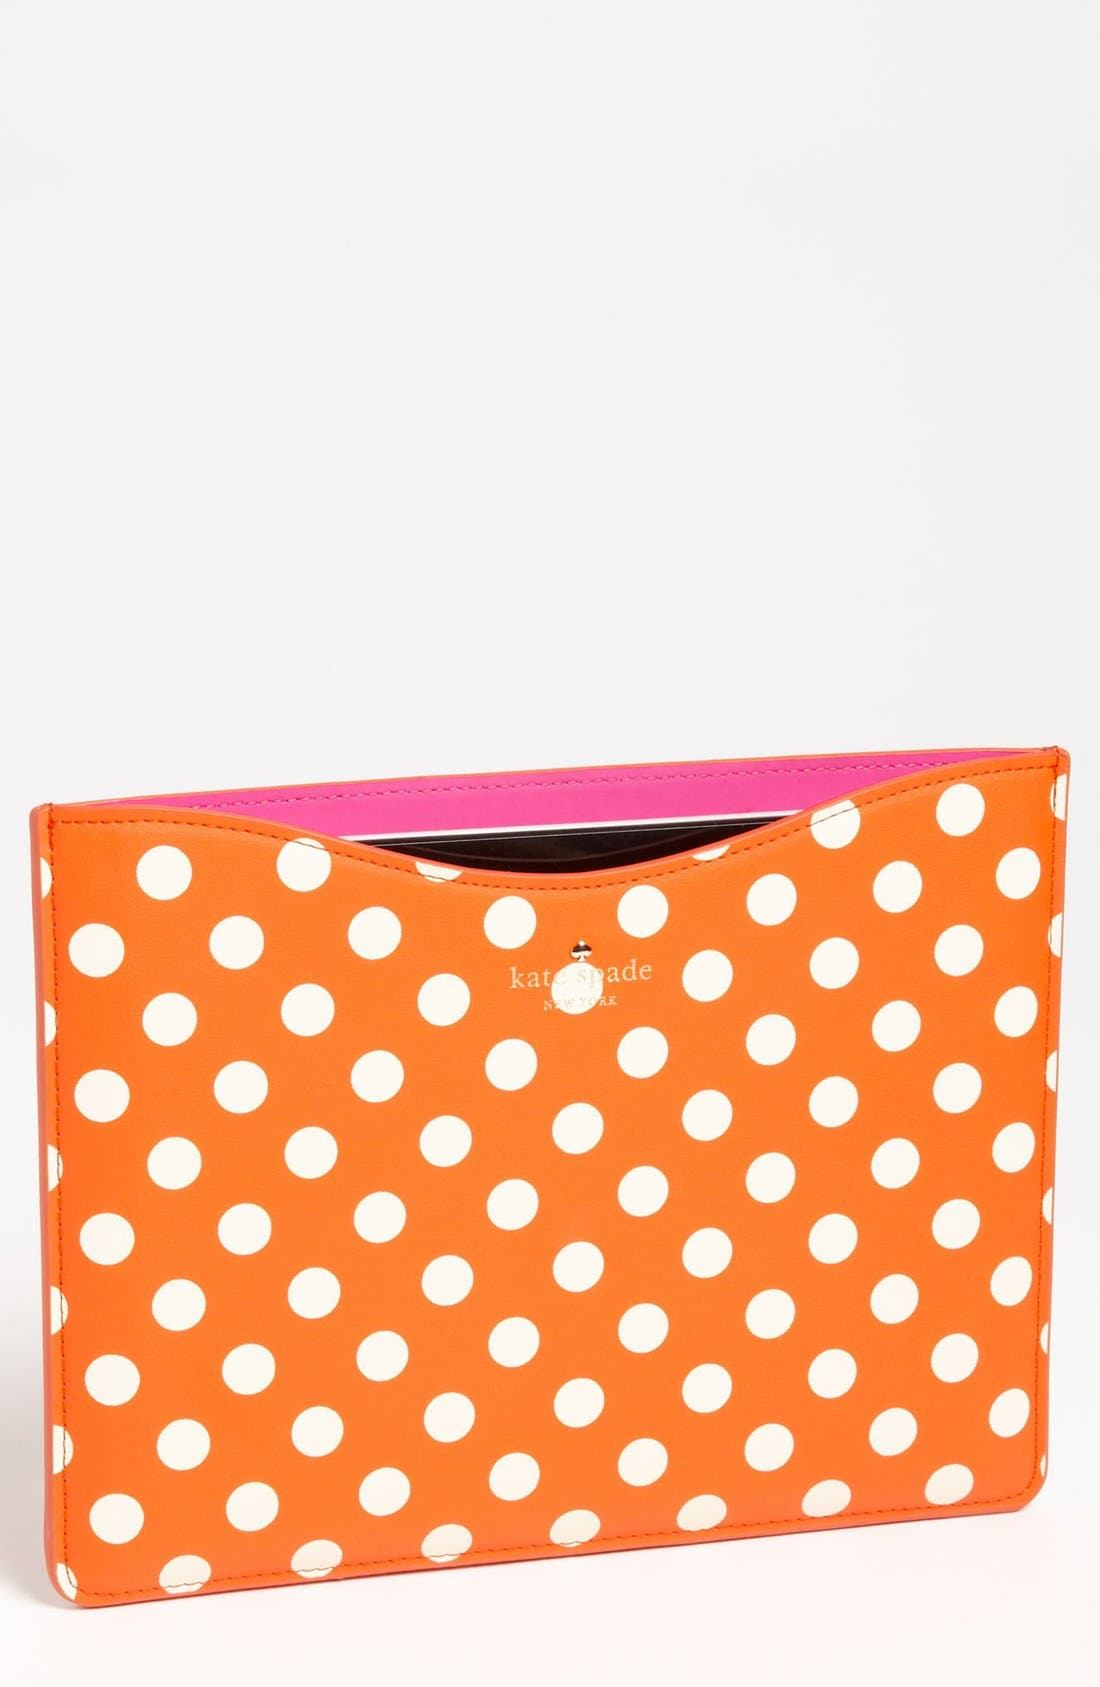 Main Image - kate spade new york 'le pavillion' iPad sleeve